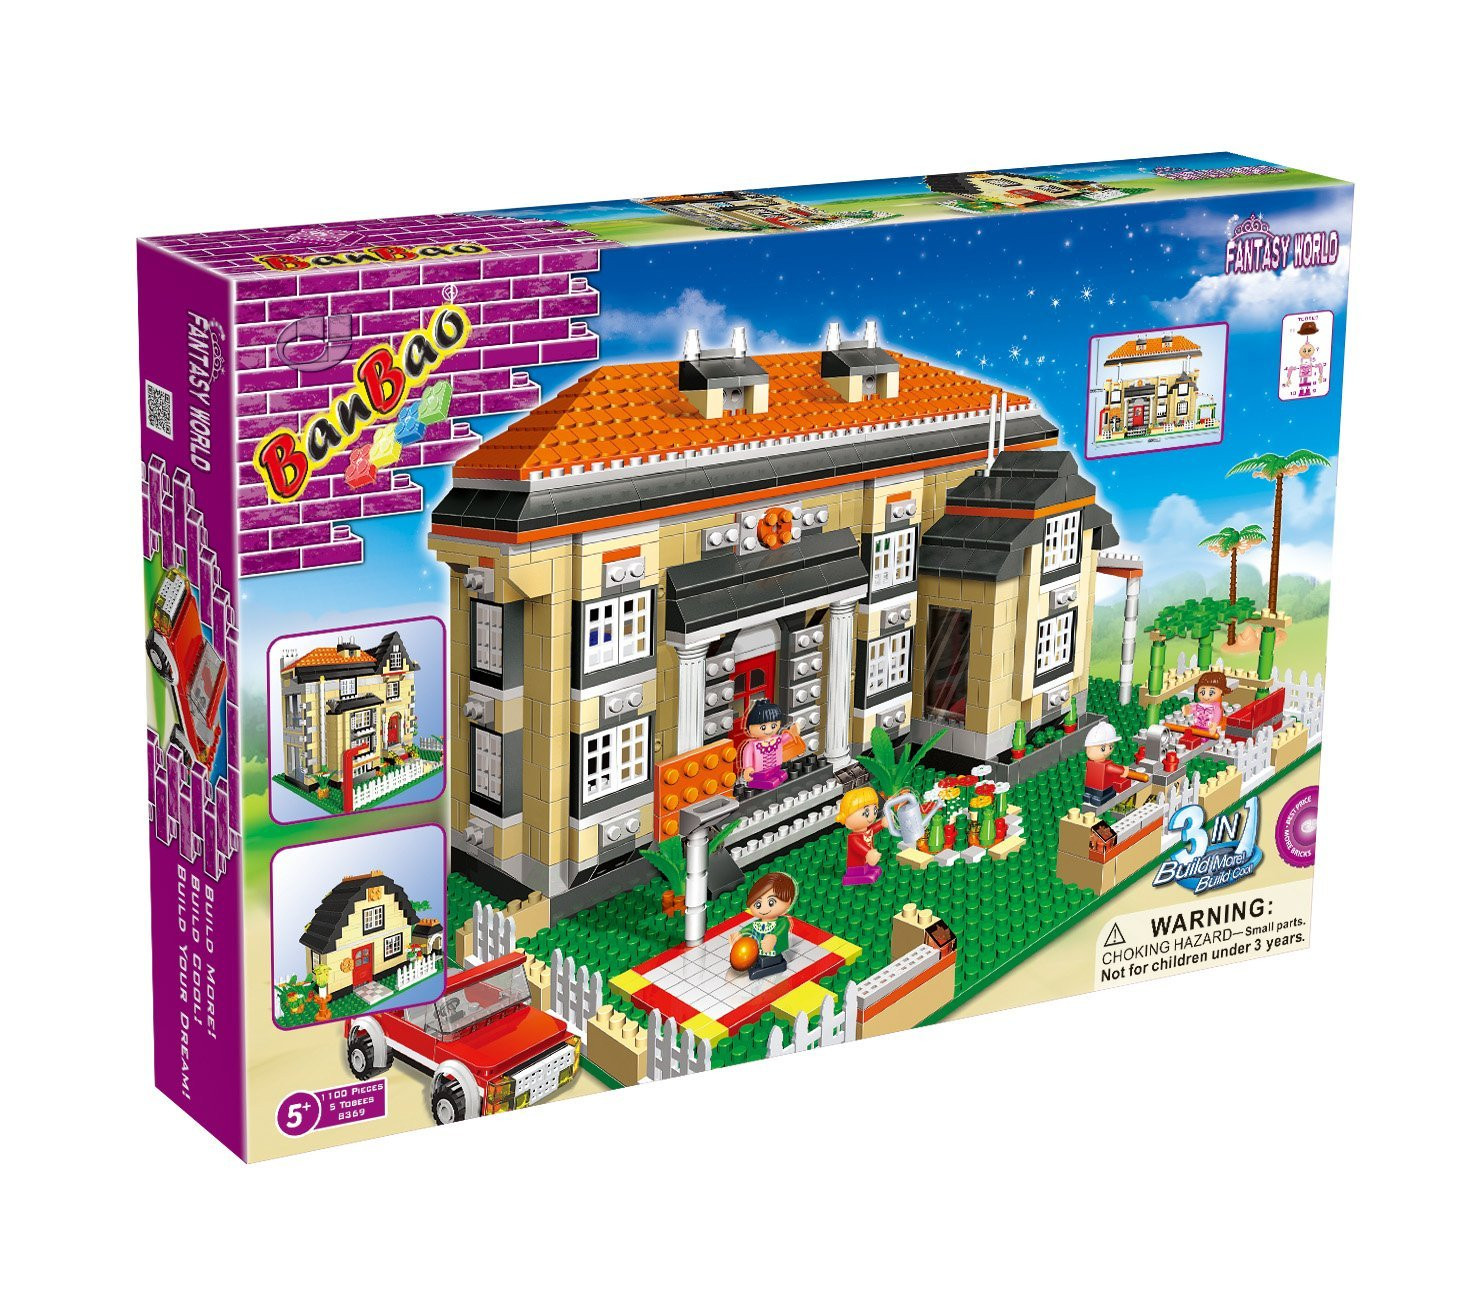 Banbao Dream House 1100pcs 3 in 1